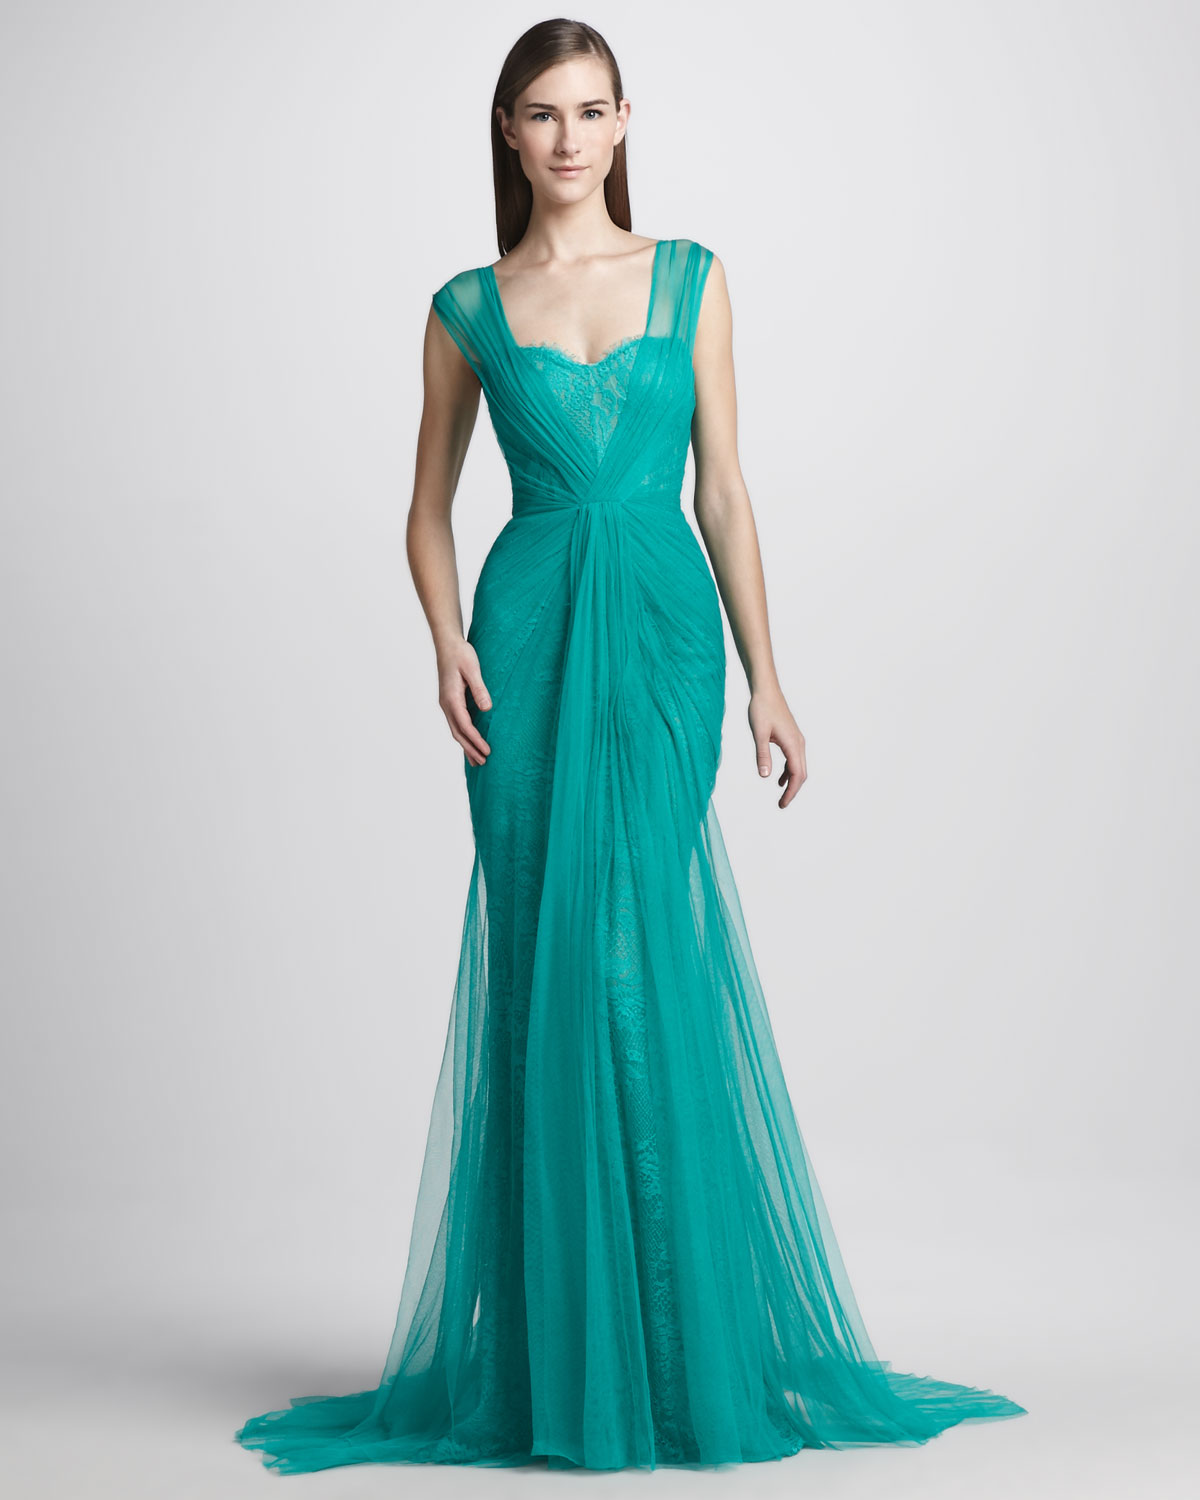 Lyst - Monique Lhuillier Sheer Lace Overlay Gown in Green